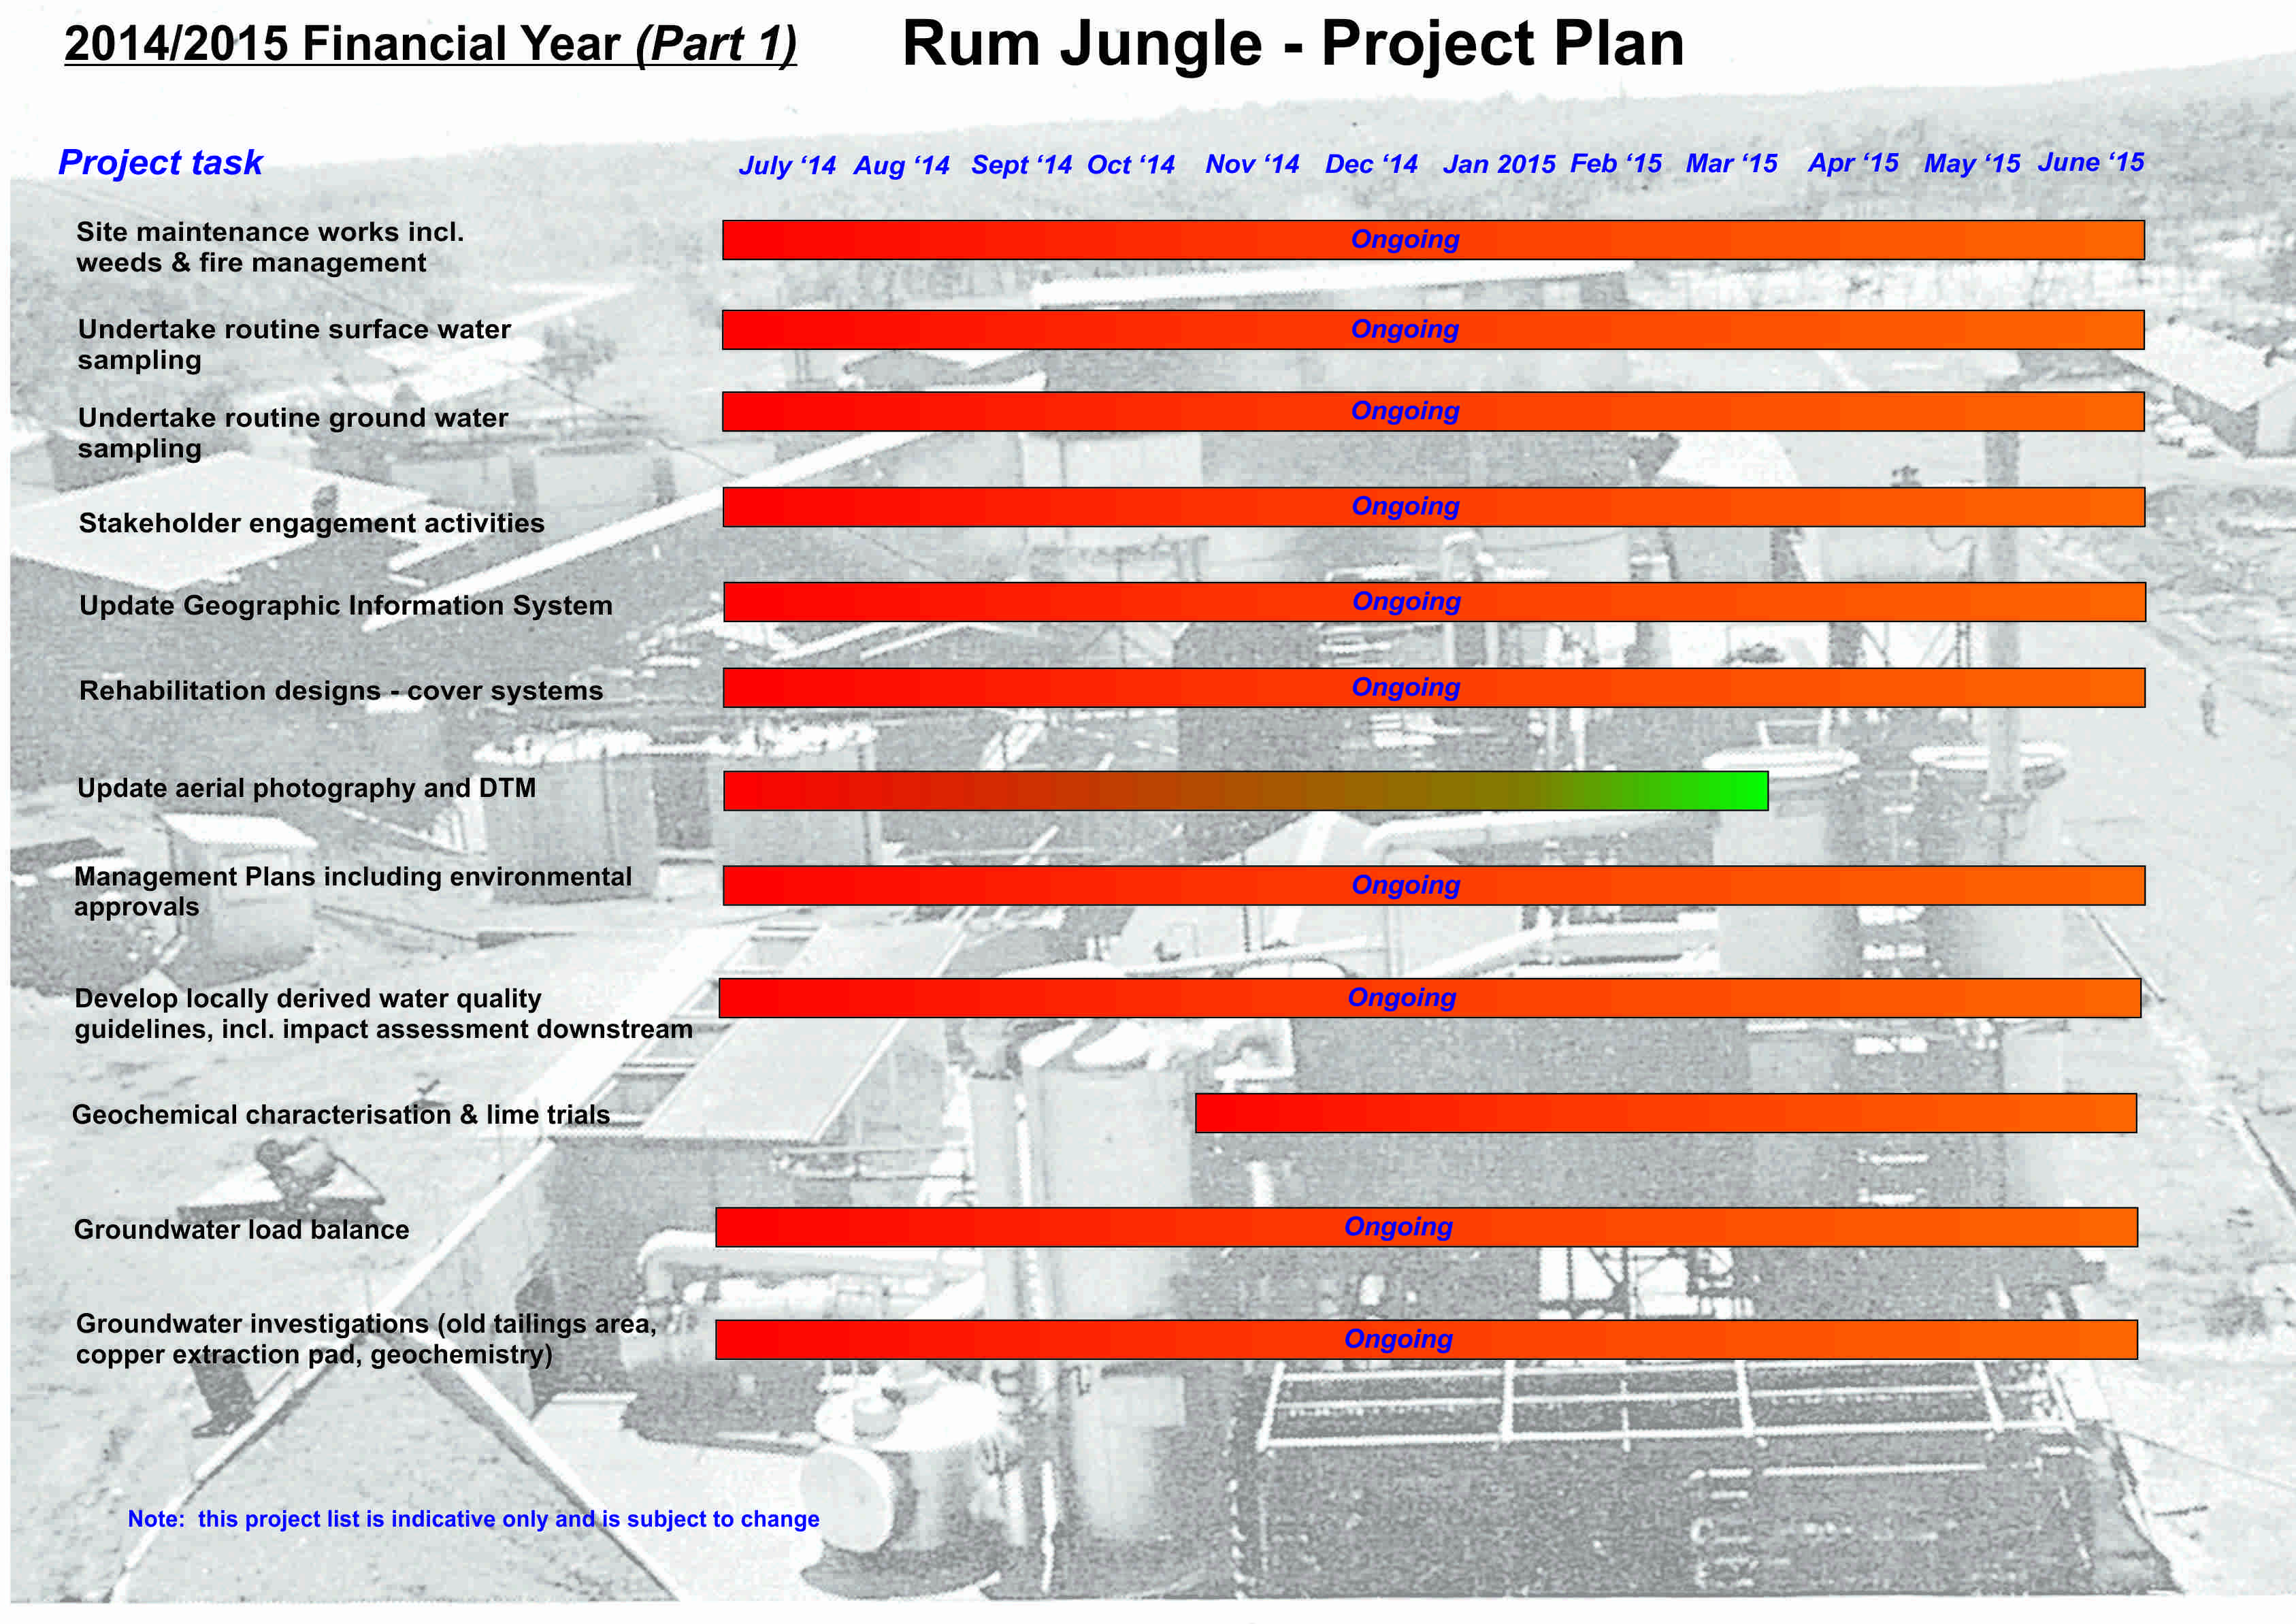 project plan 14-15 (part 1)